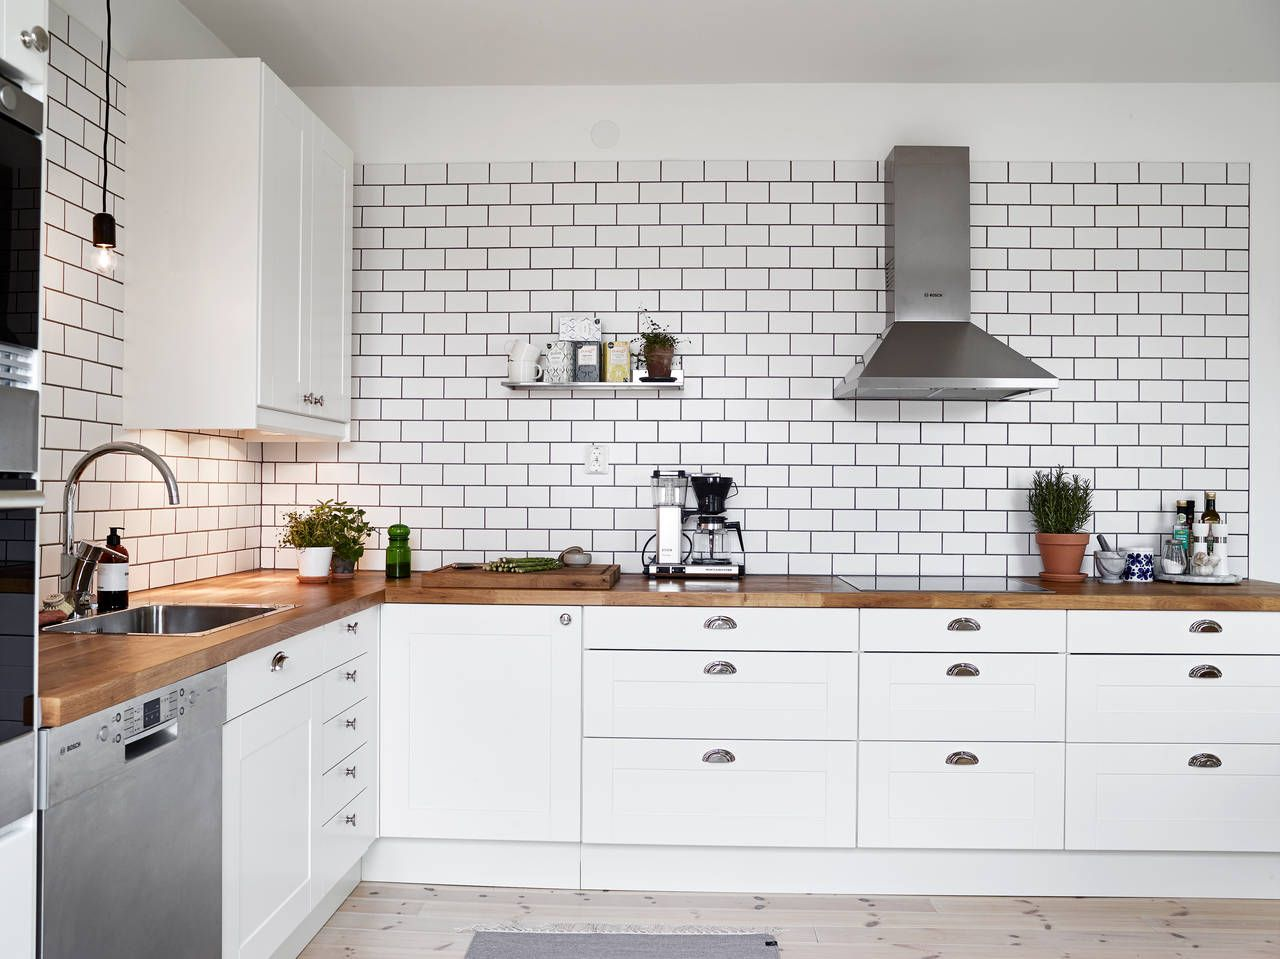 Of Kitchen Tiles A White Tiles Black Grout Kind Of Kitchen Coco Lapine Design